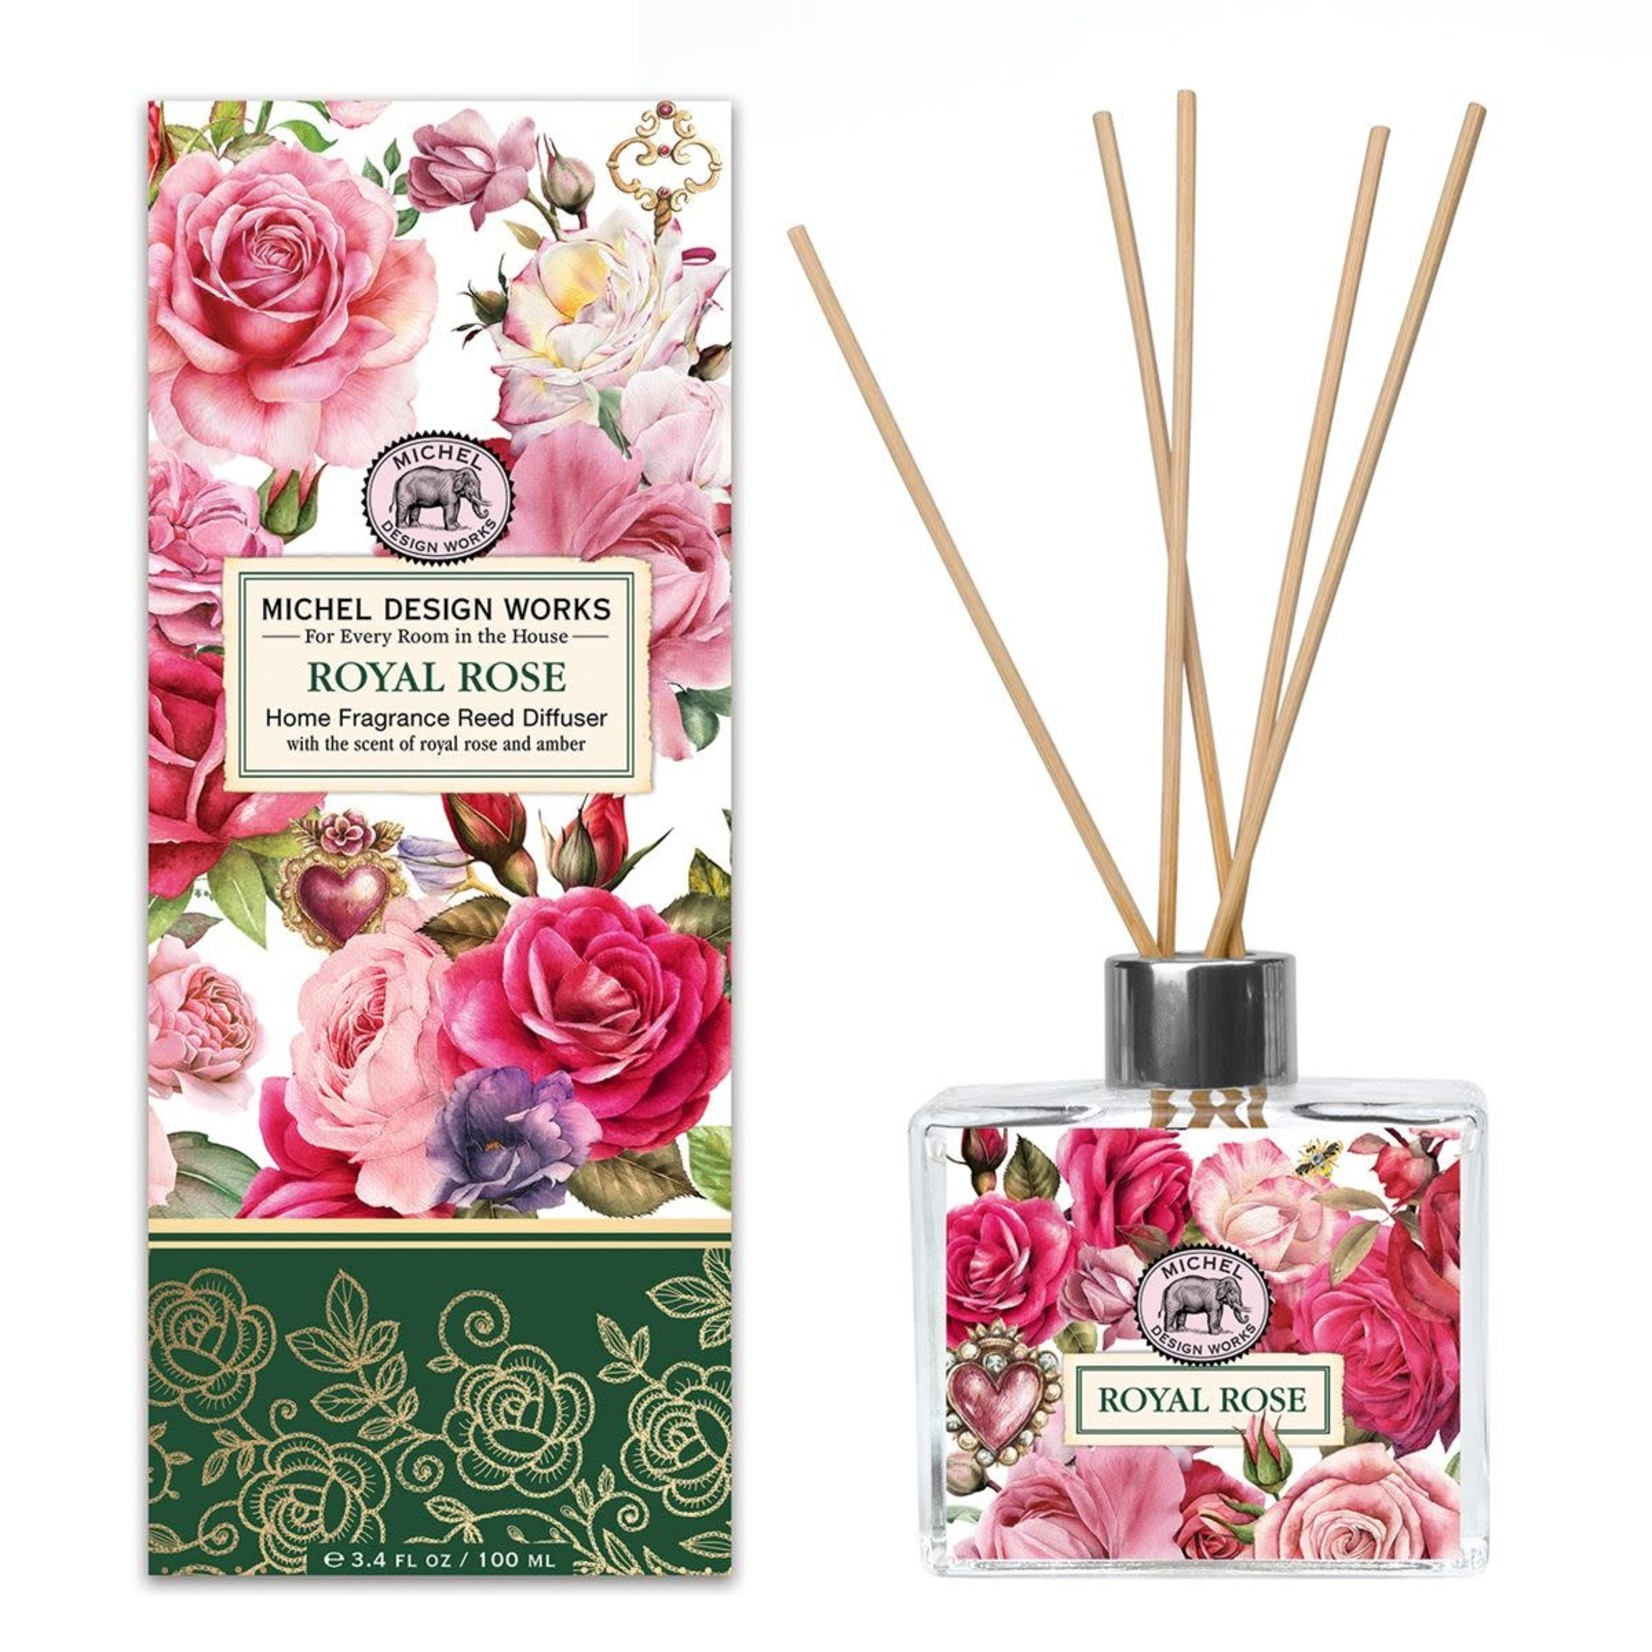 Michel Design Works Royal Rose Home Fragrance Reed Diffuser